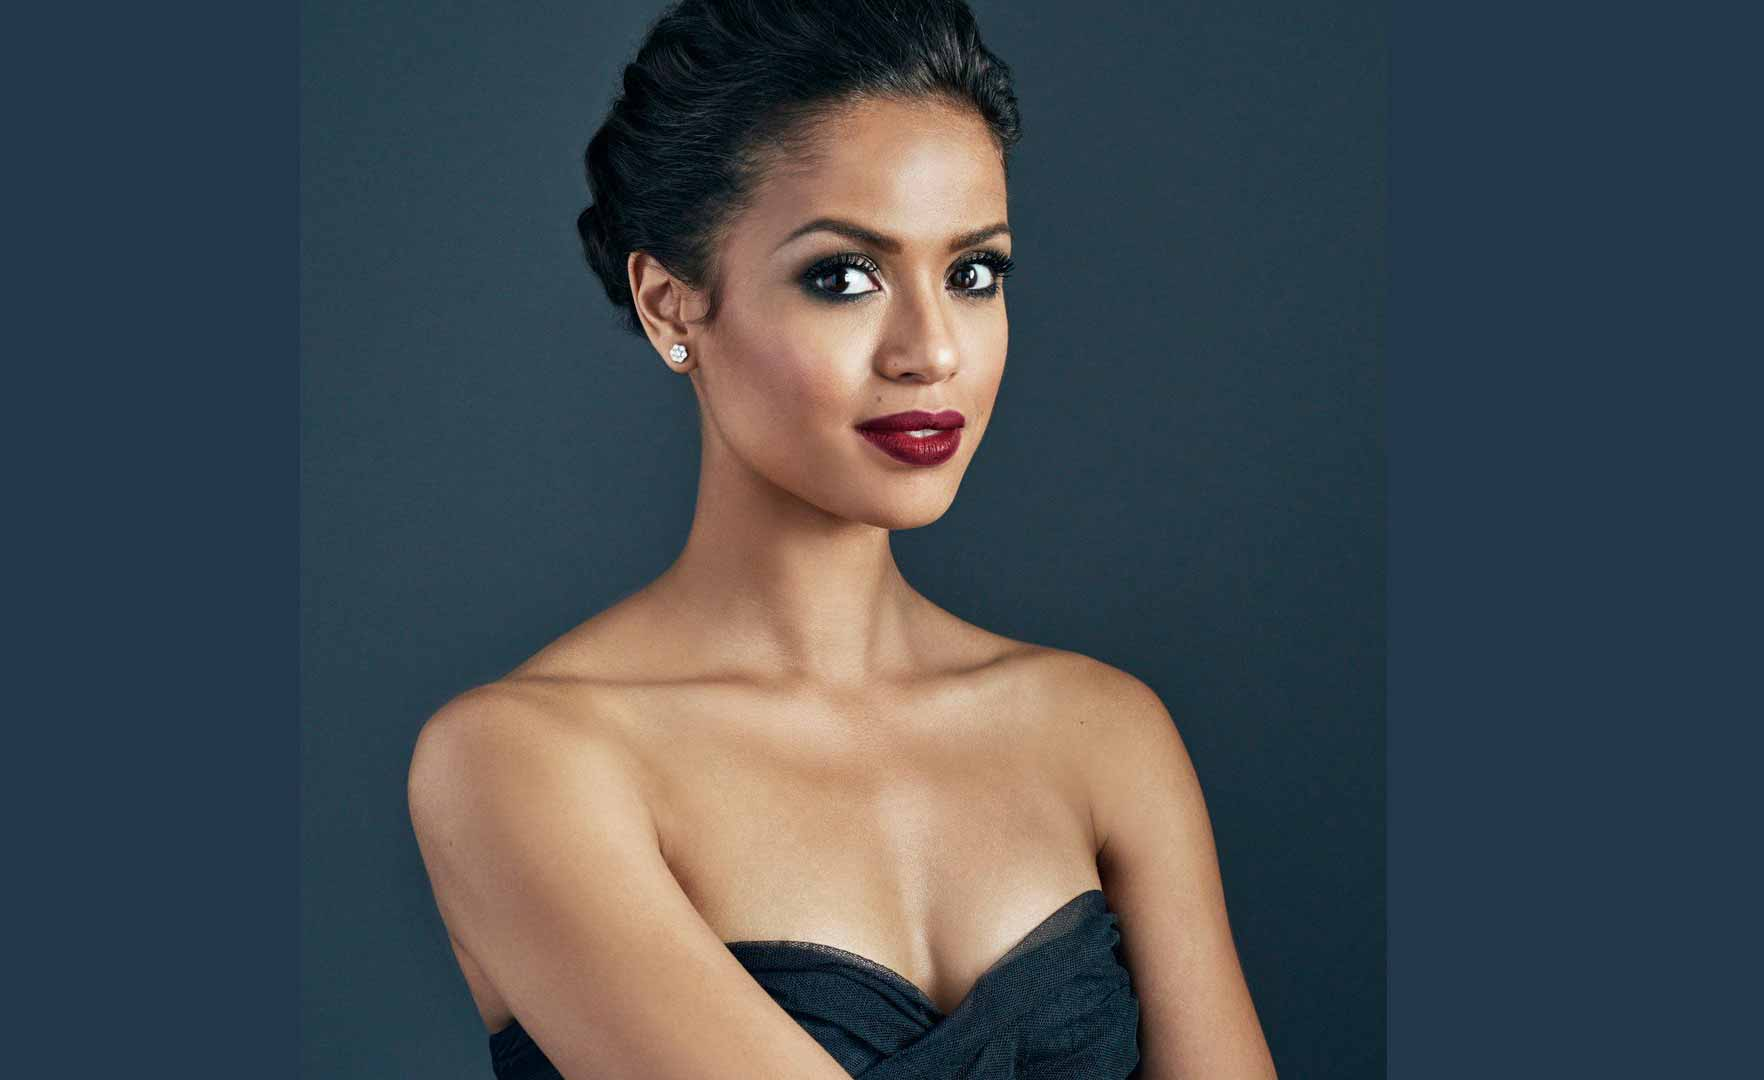 Who is Gugu Mbatha-Raw Boyfriend? Know Her Parents And Family Life